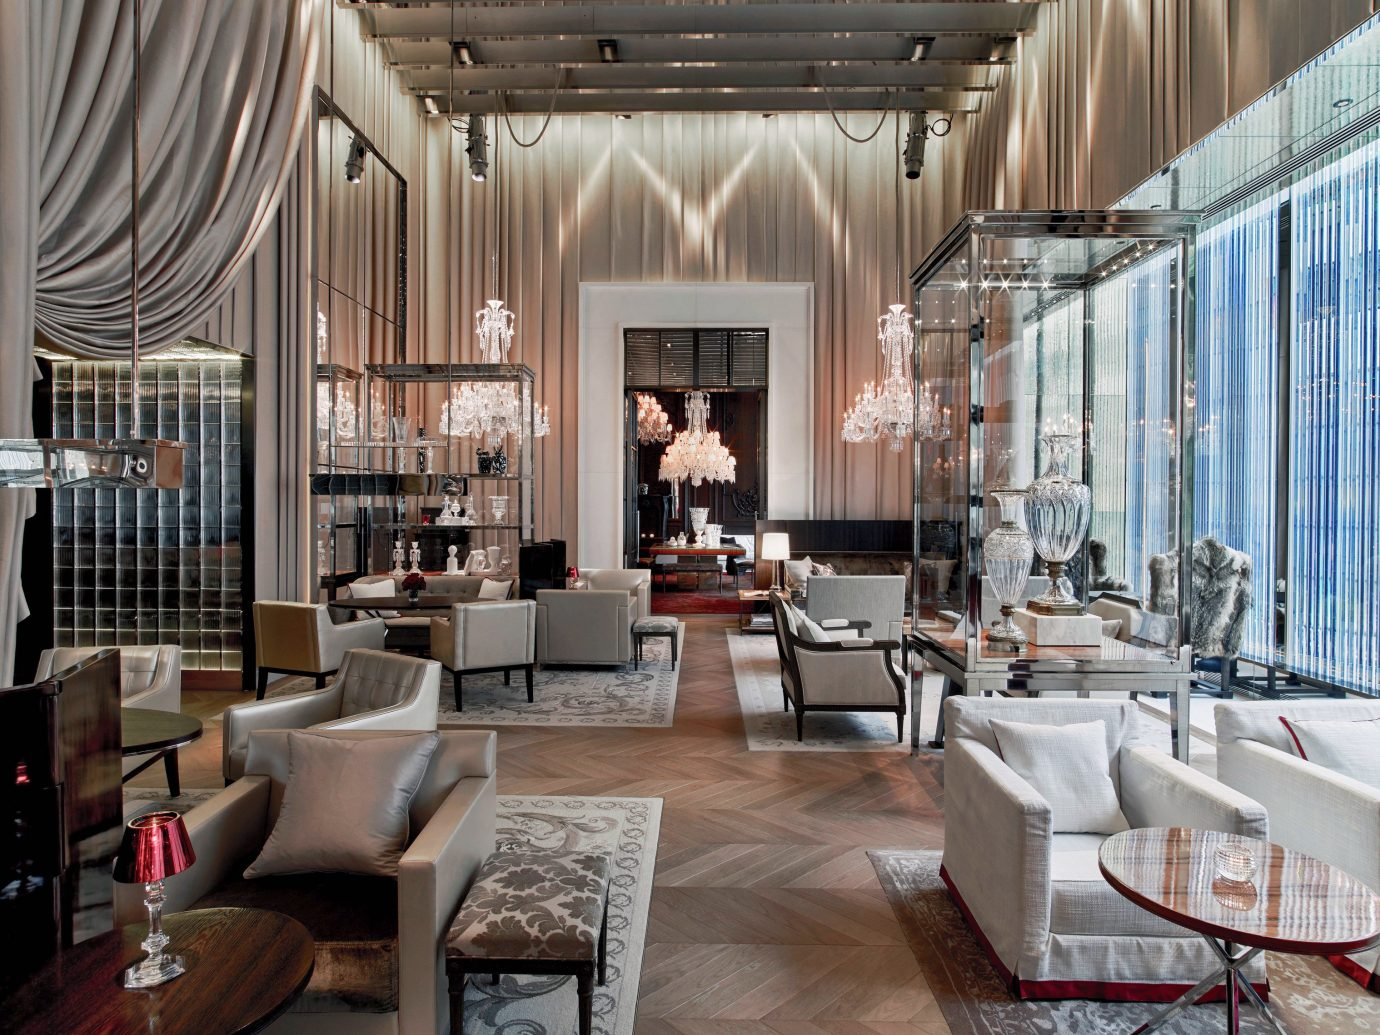 Baccarat Hotel, New York